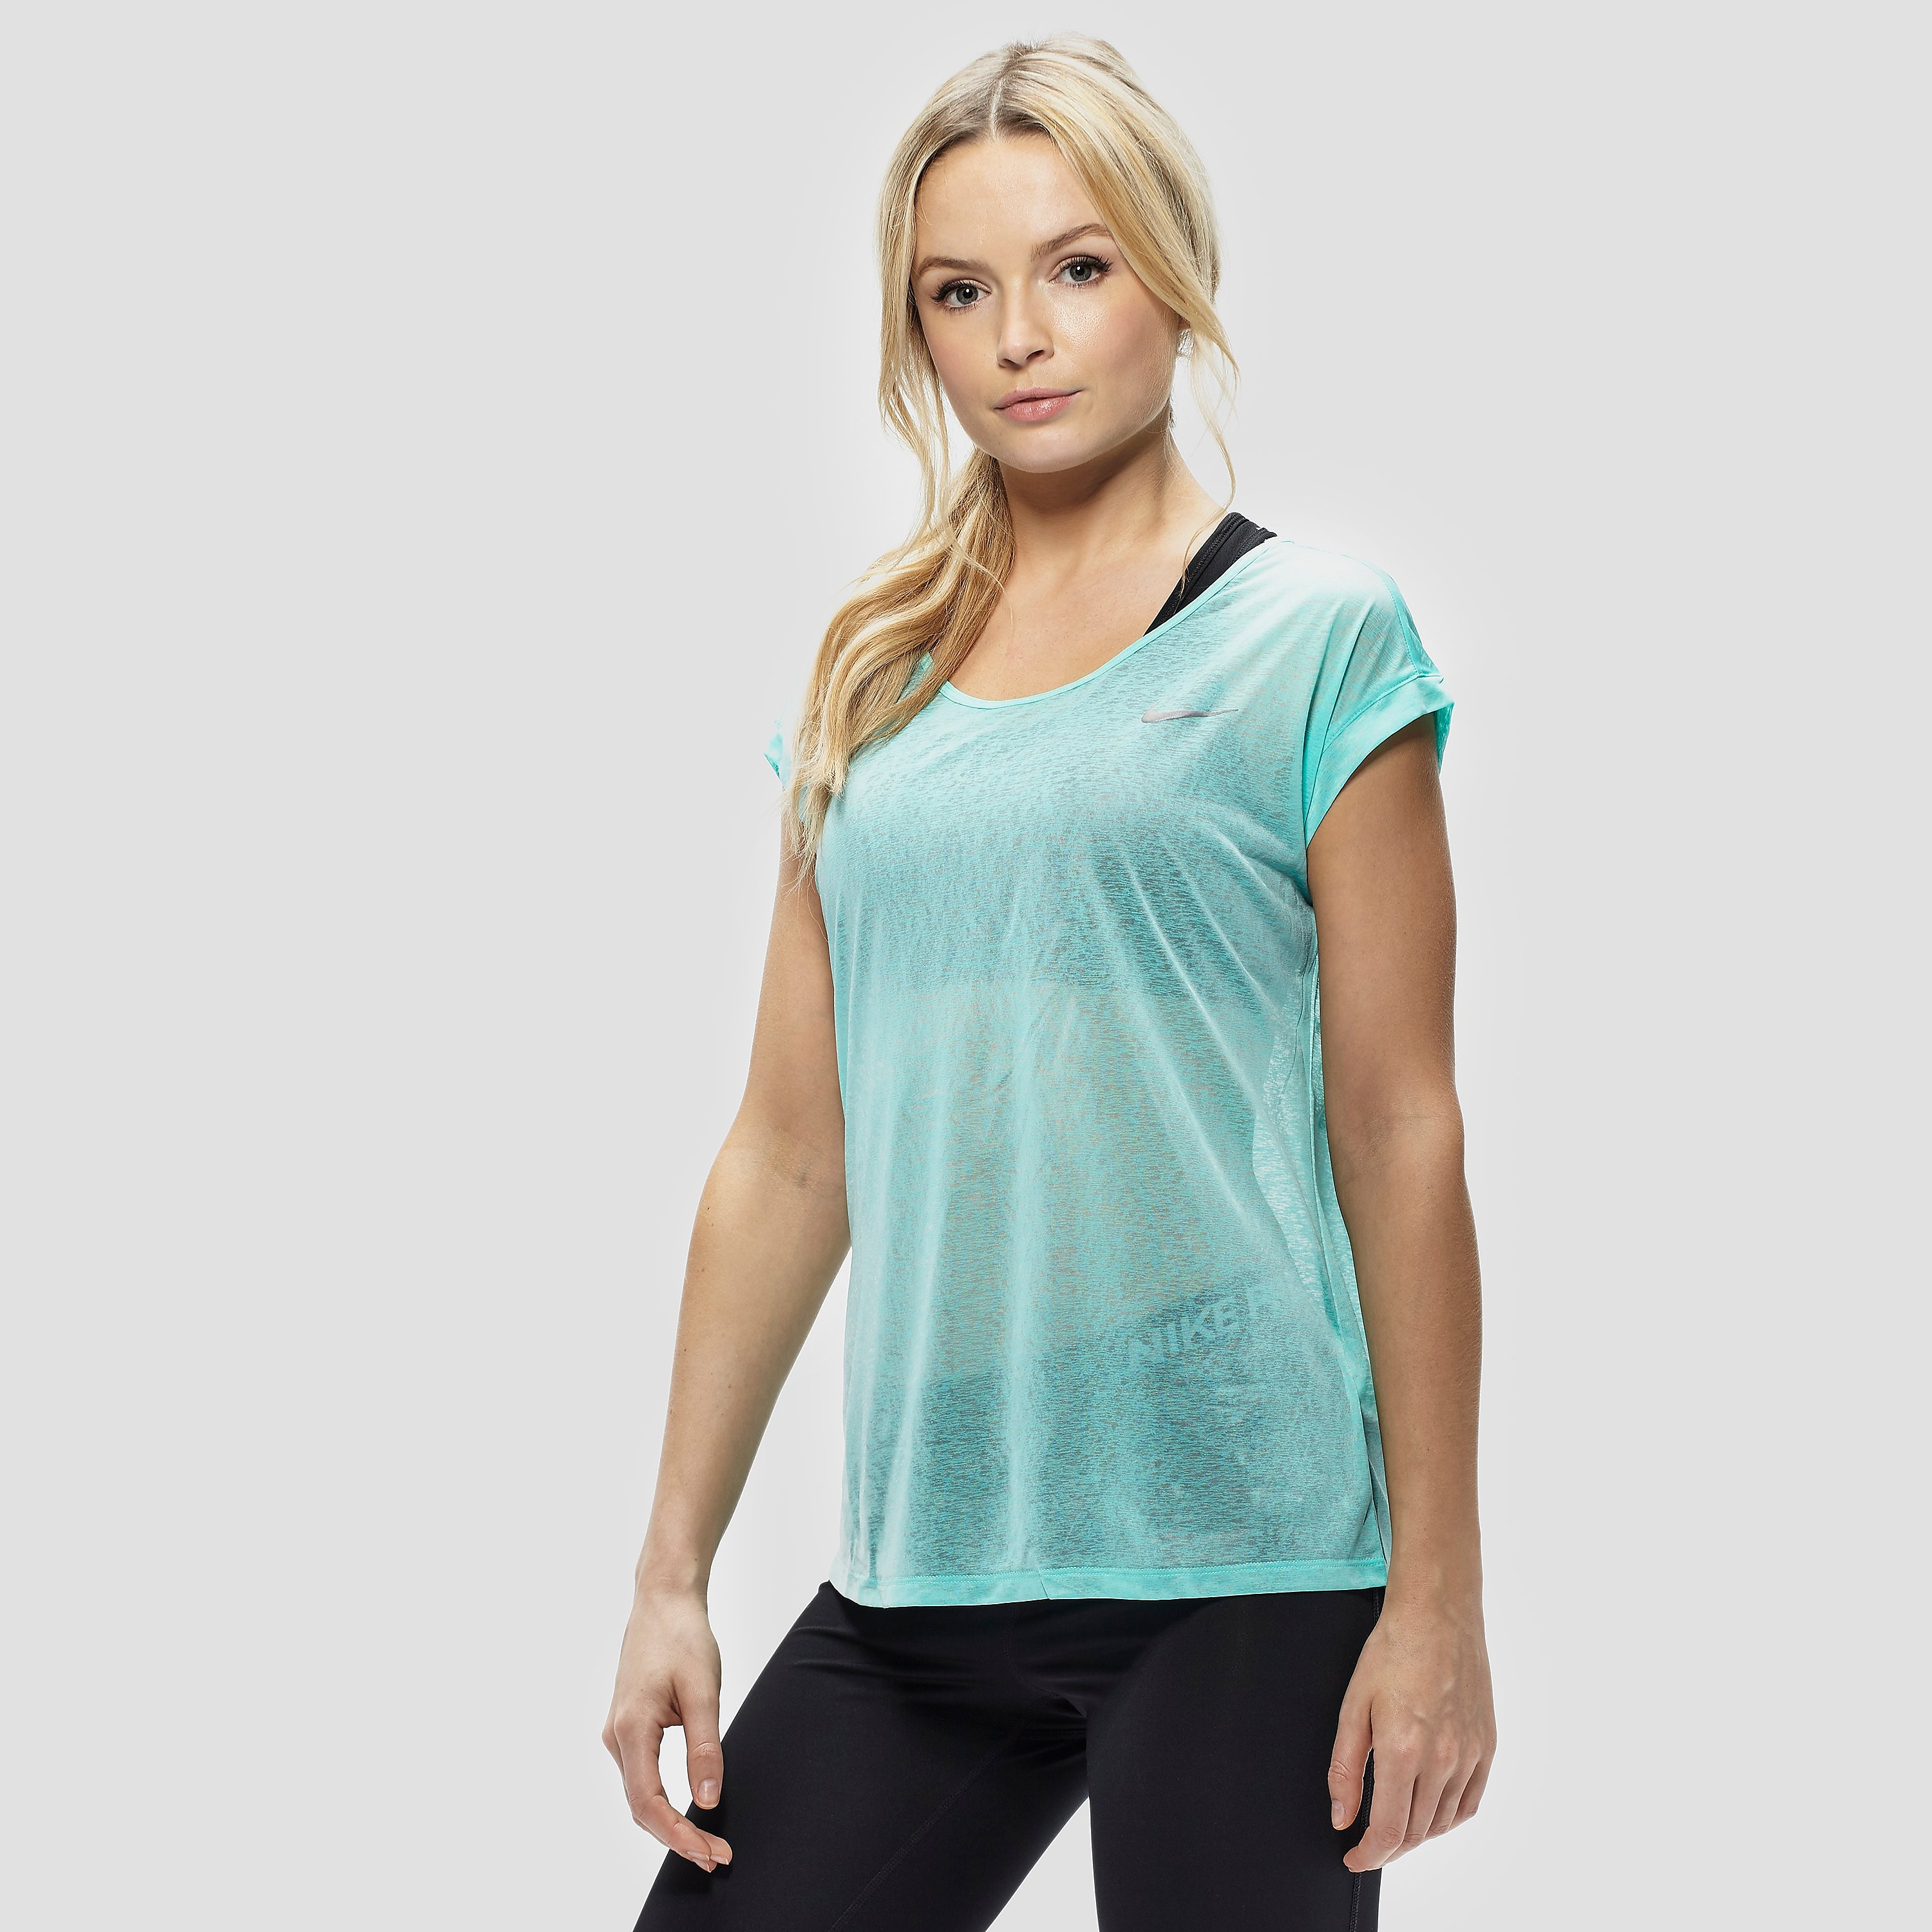 Nike Cool Breeze Running Women's T-shirt